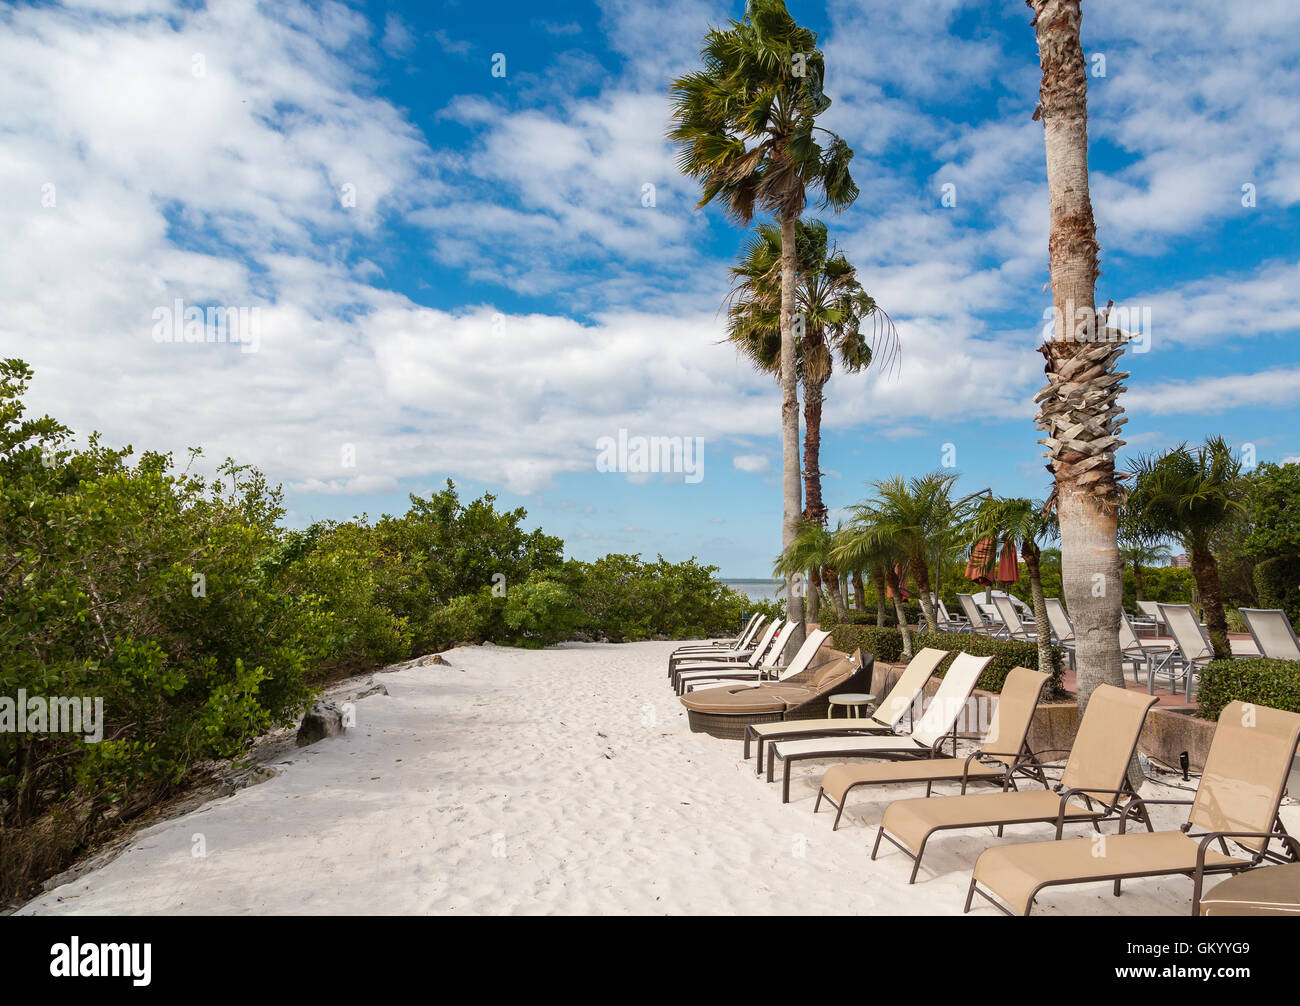 Chaise lounges on a sandy beach under palm trees - Stock Image